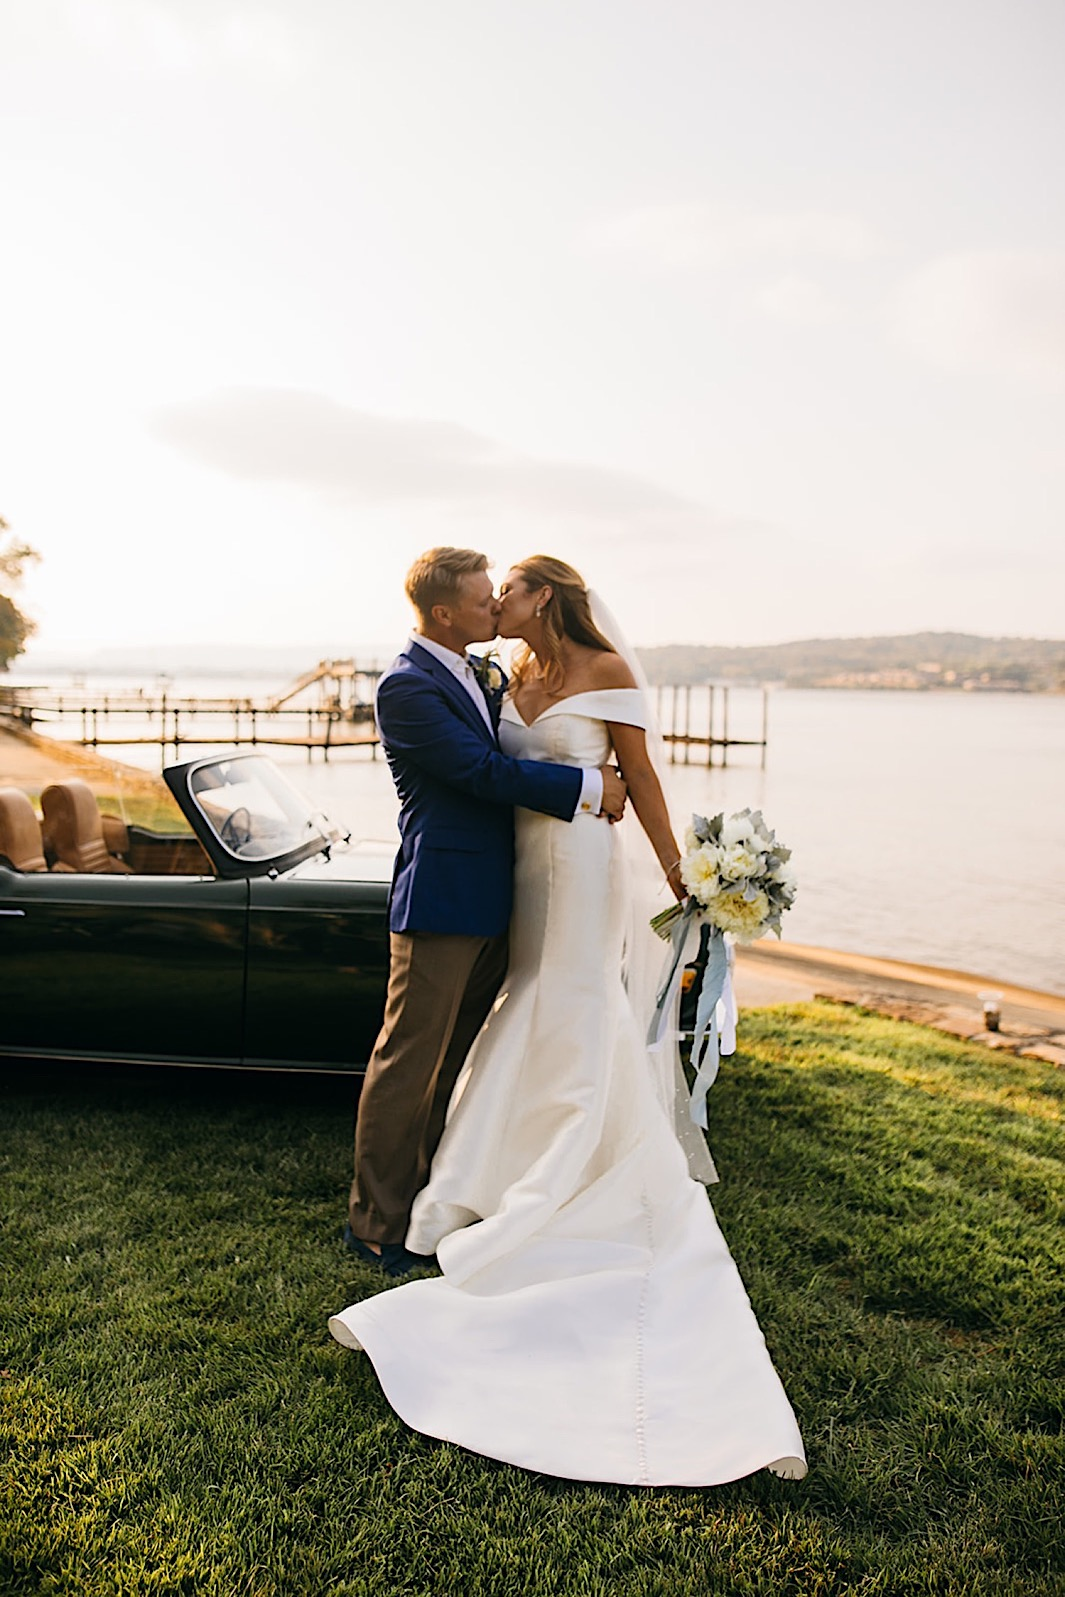 A bride and groom kiss in front of a vintage car parked by a lake.